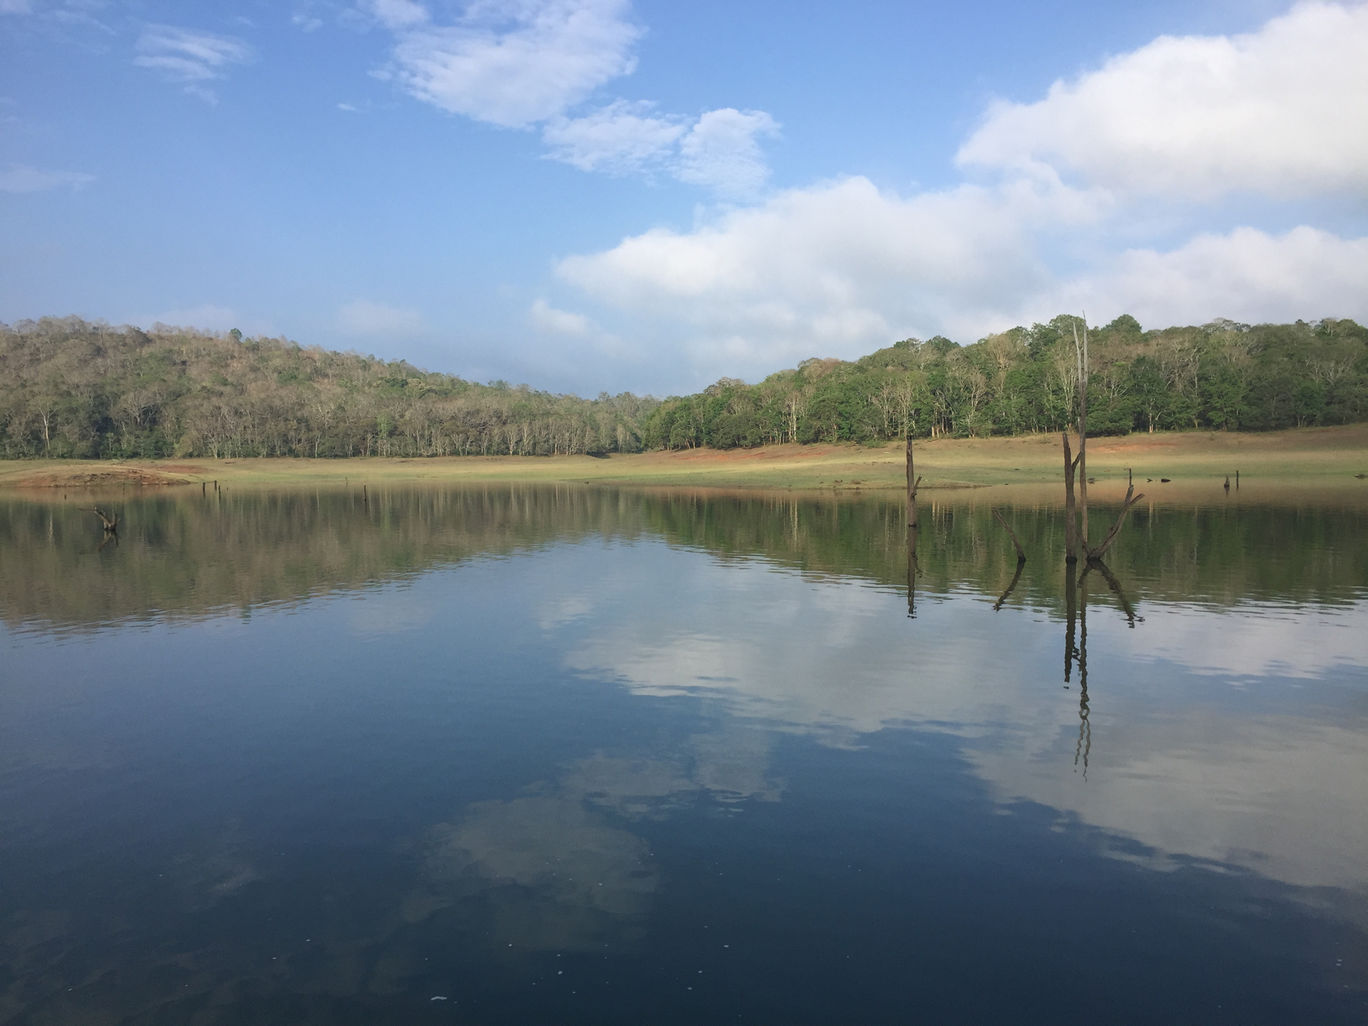 Photo of Boating in Periyar Tiger Reserve #Thekkady By Vaisakh V Lal